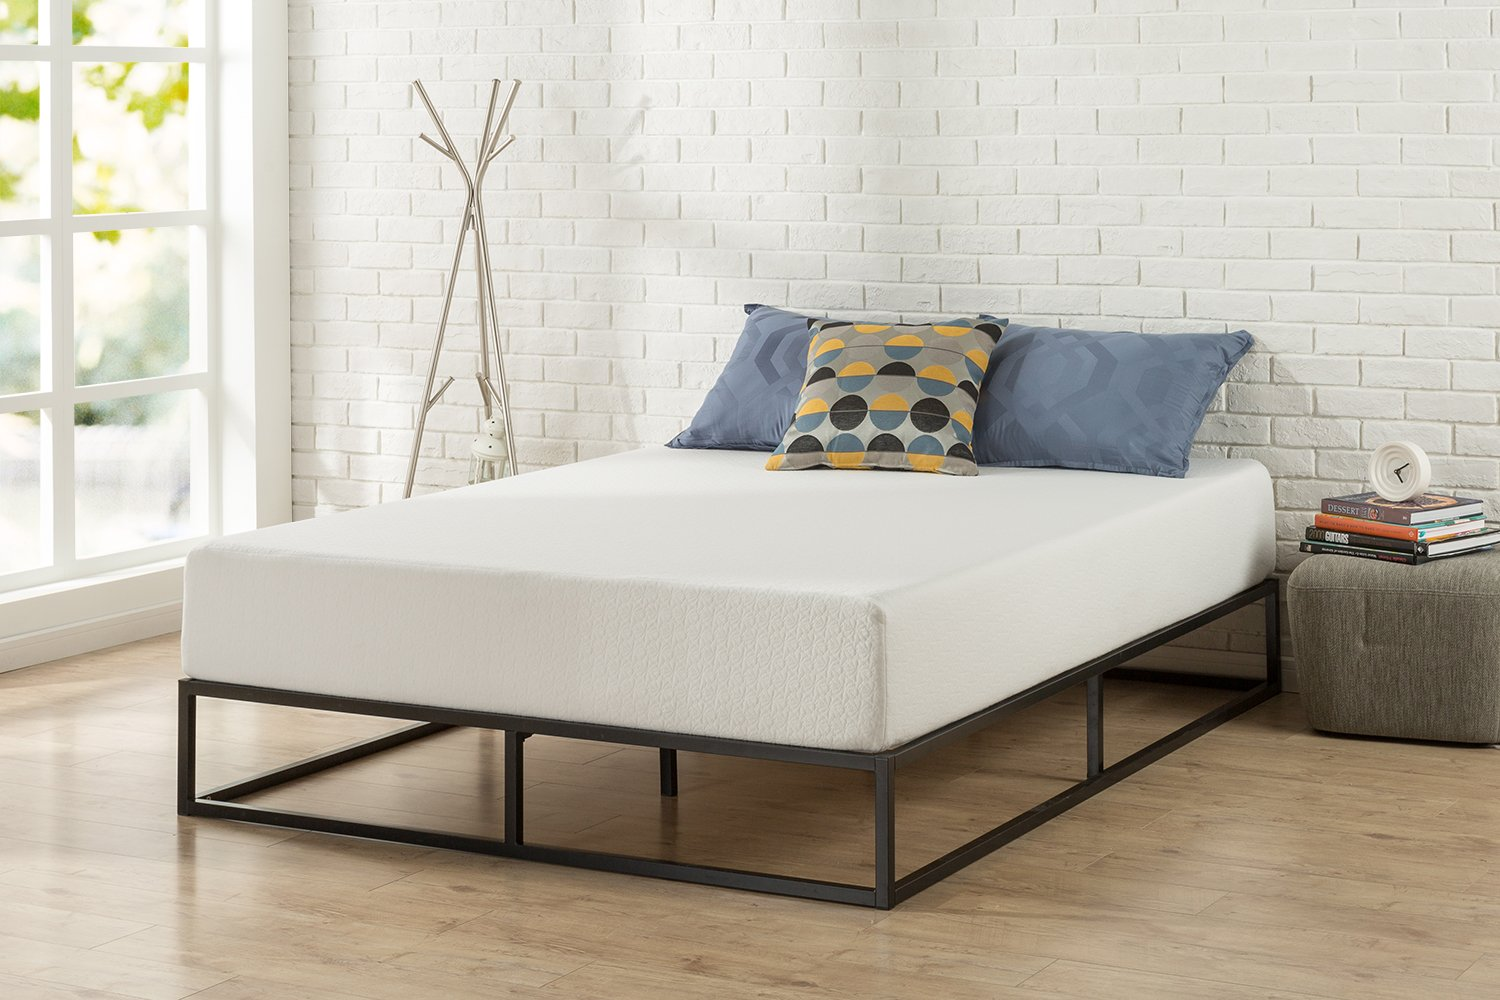 Top 10 Best Mattress Toppers Reviews in 2020 10